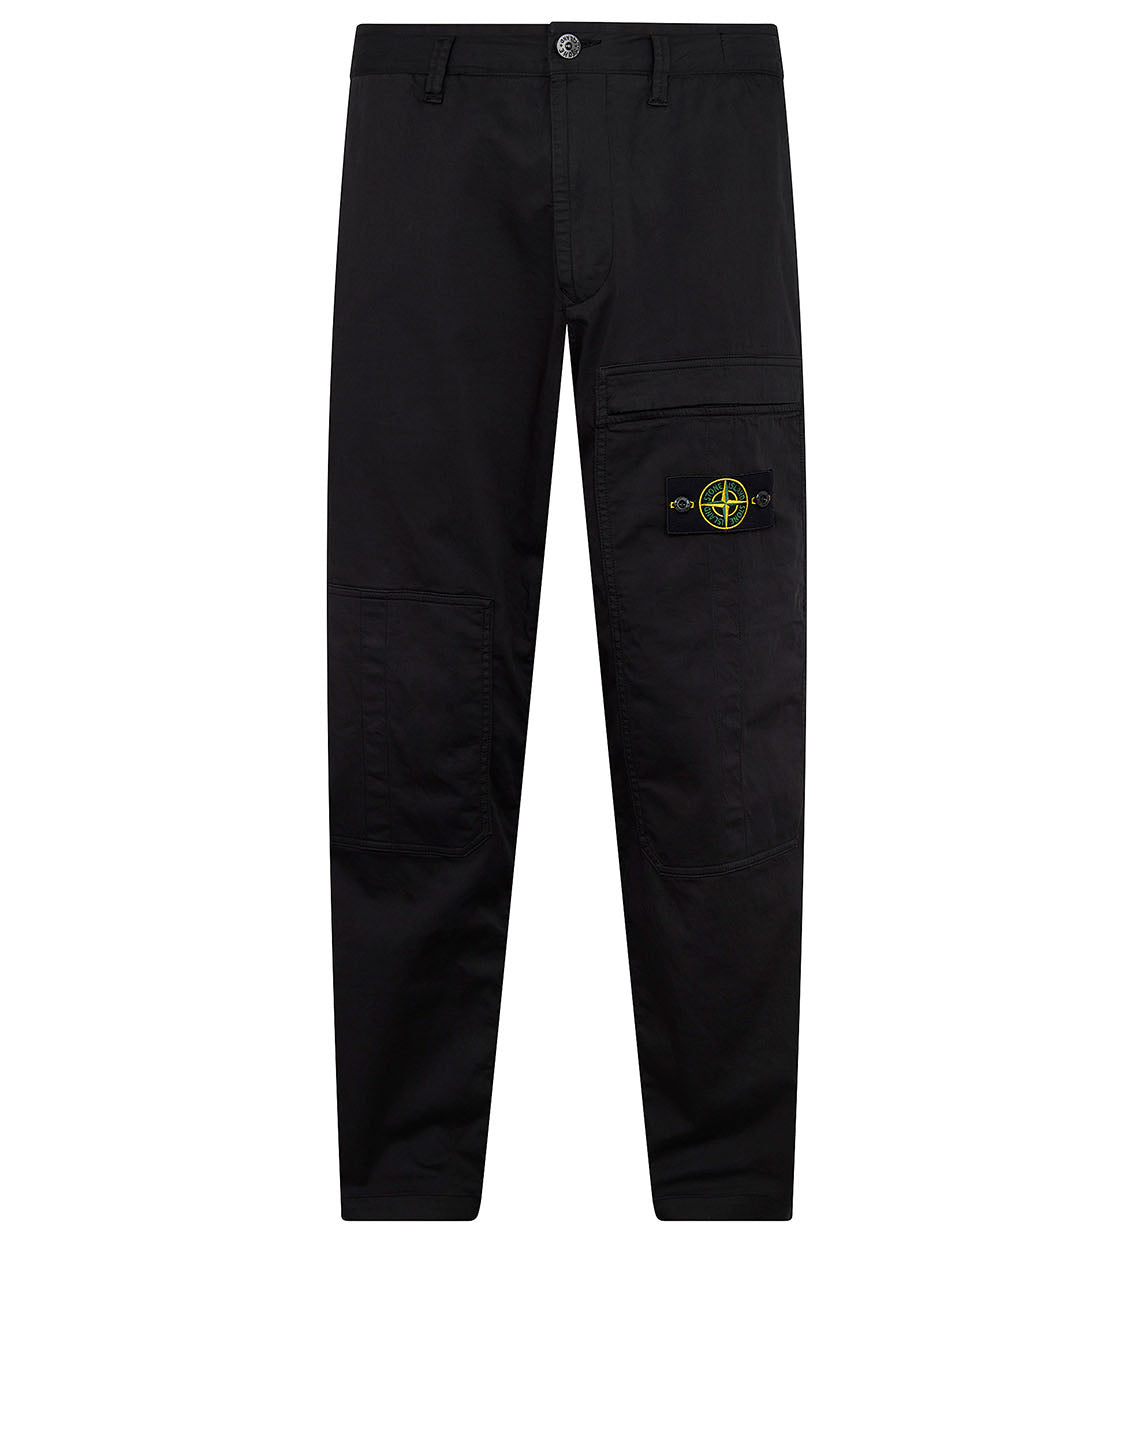 30609 Pants in Black